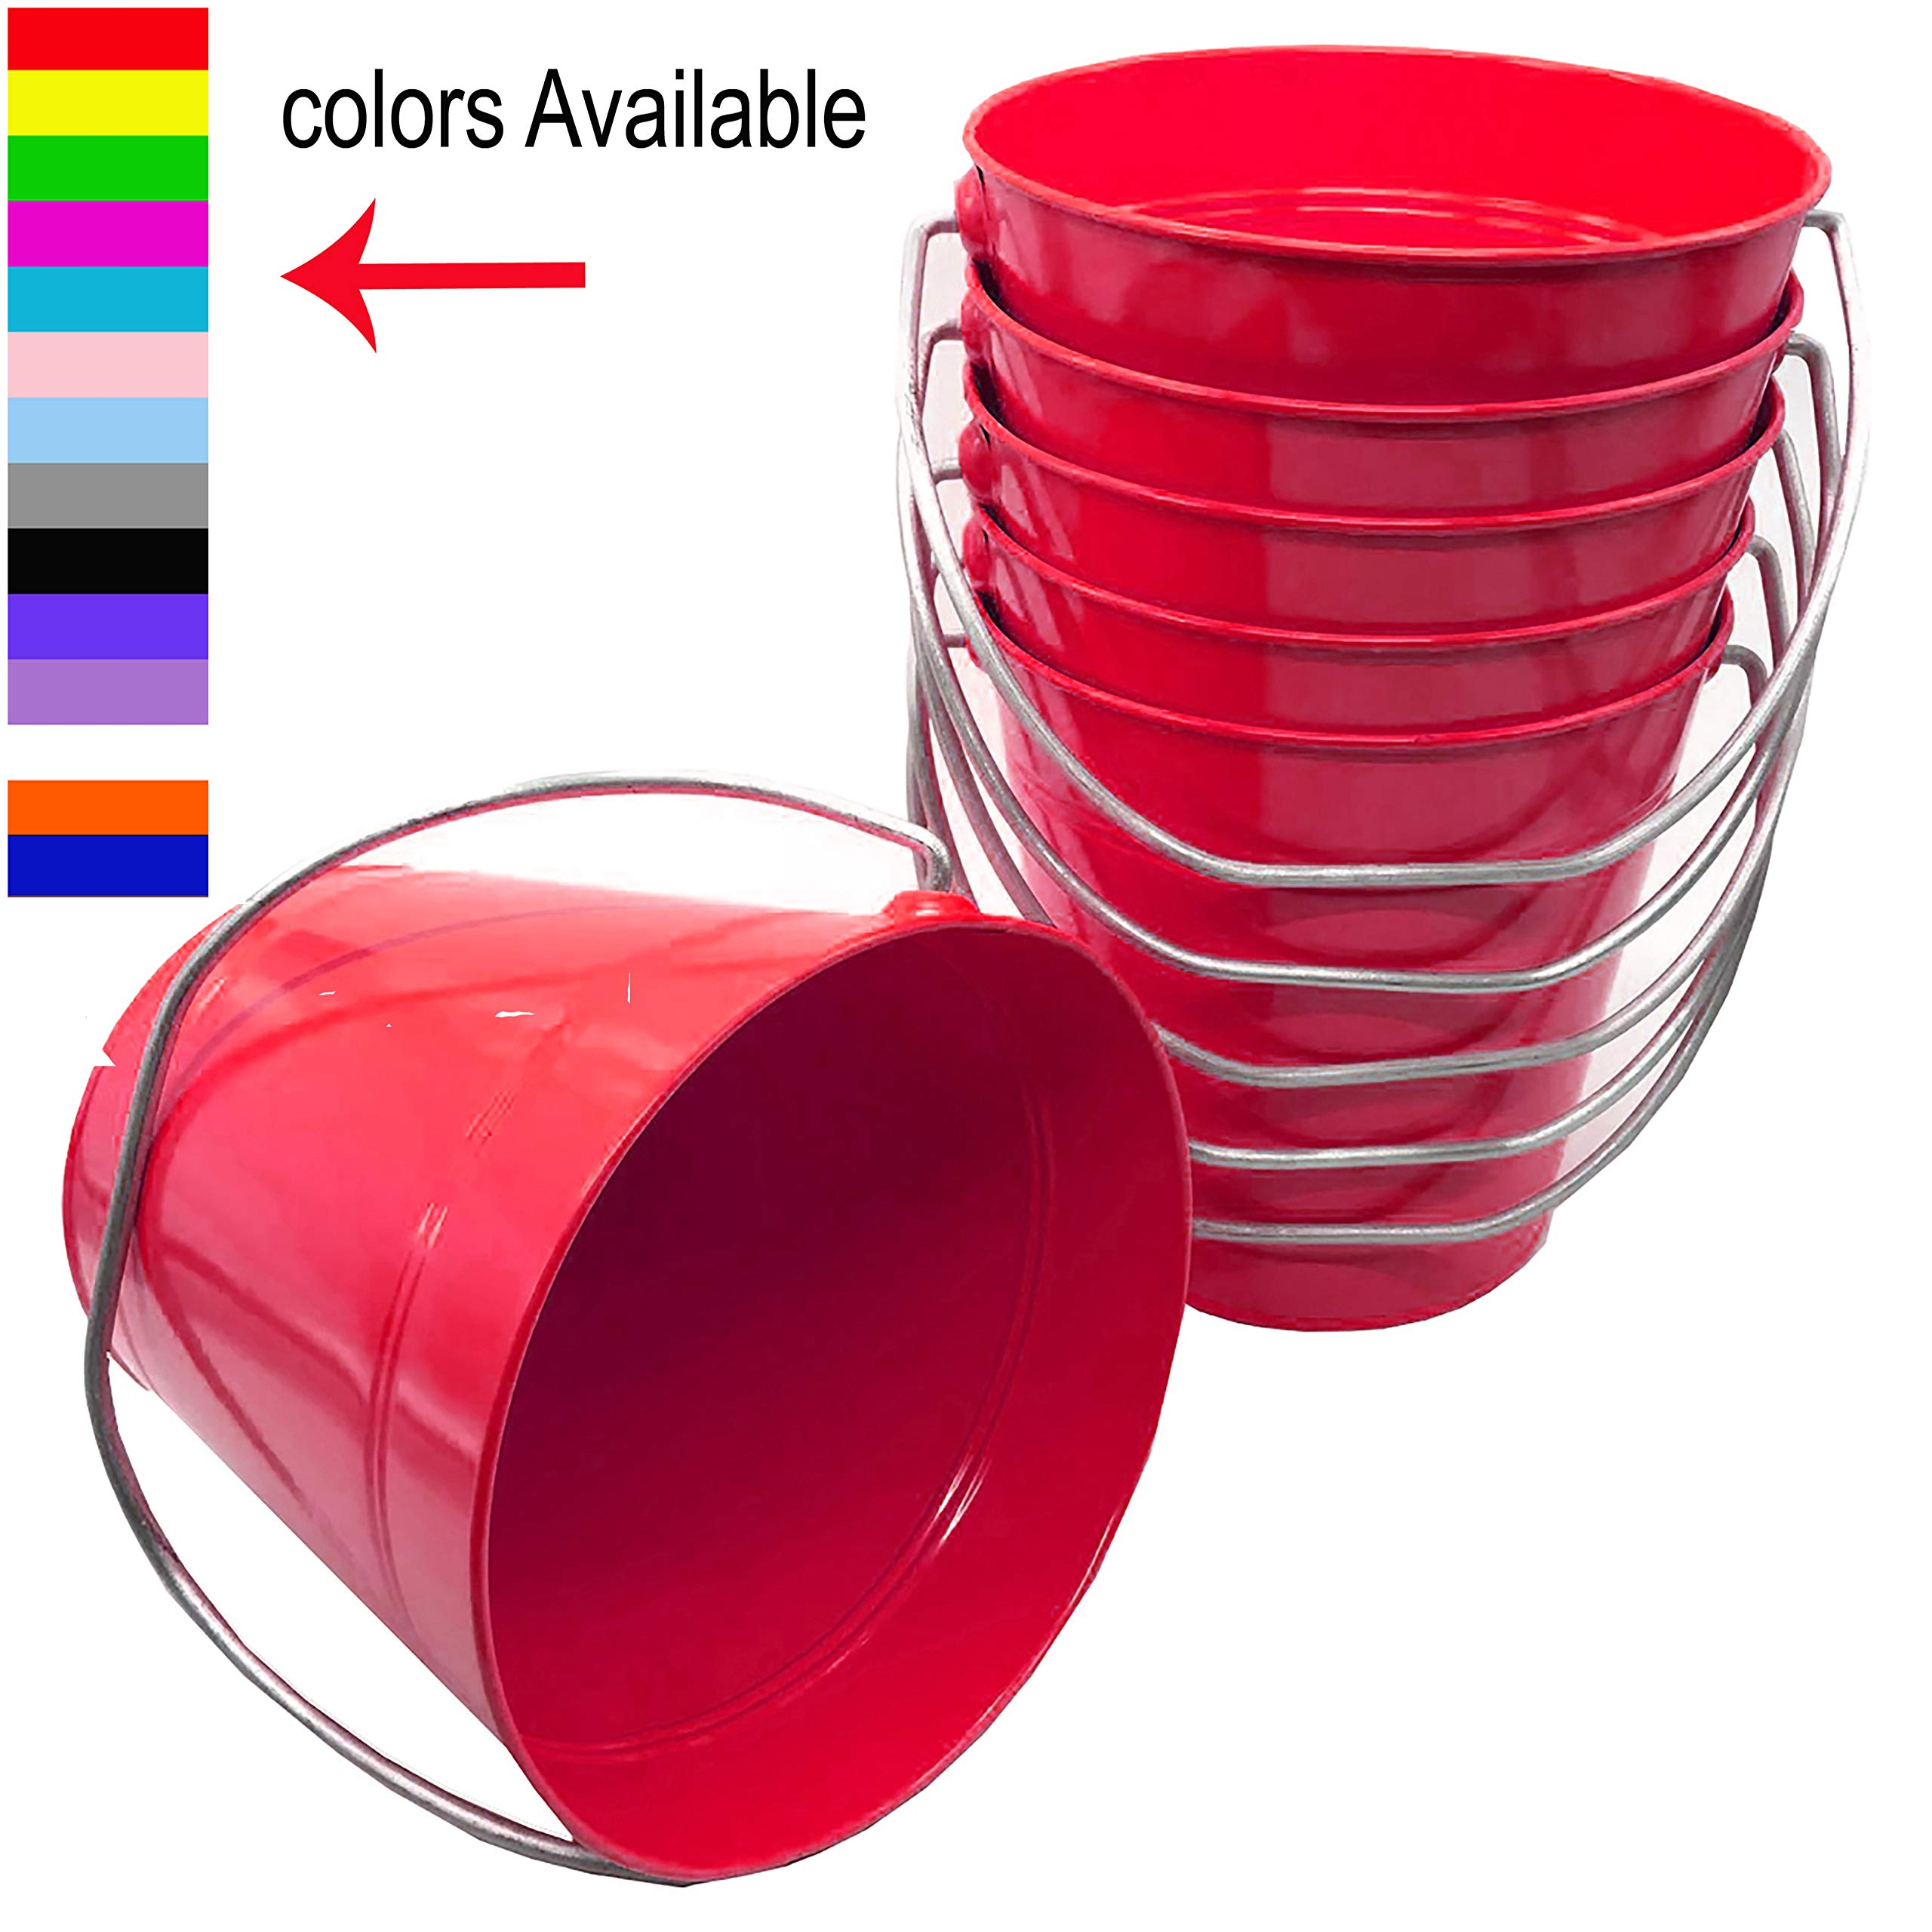 Italia 6-Pack Metal Bucket 3.7 Quart color Red Size 7.5 x 7.5''